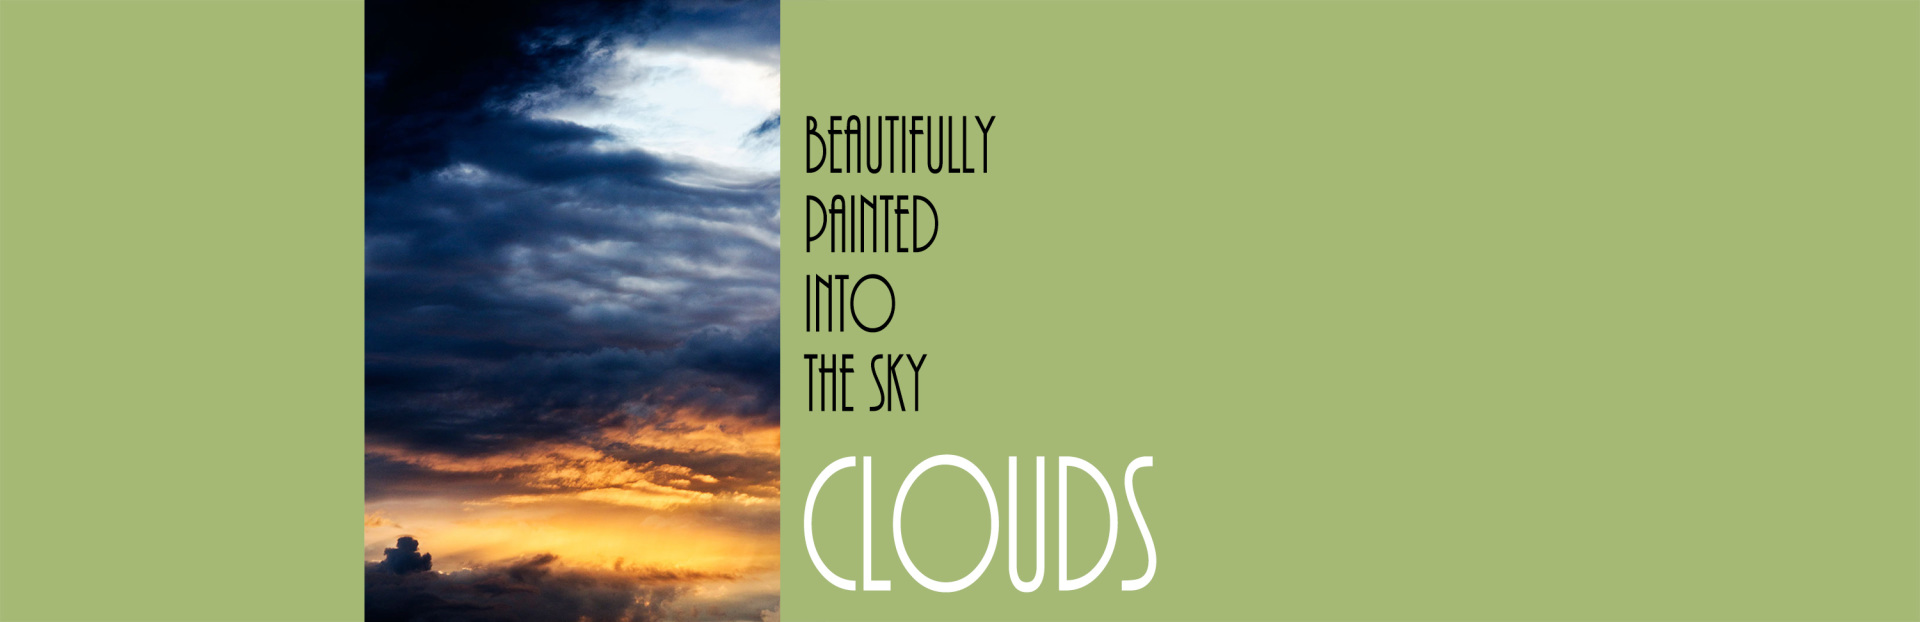 Banner wostphoto categorie spotlight_clouds